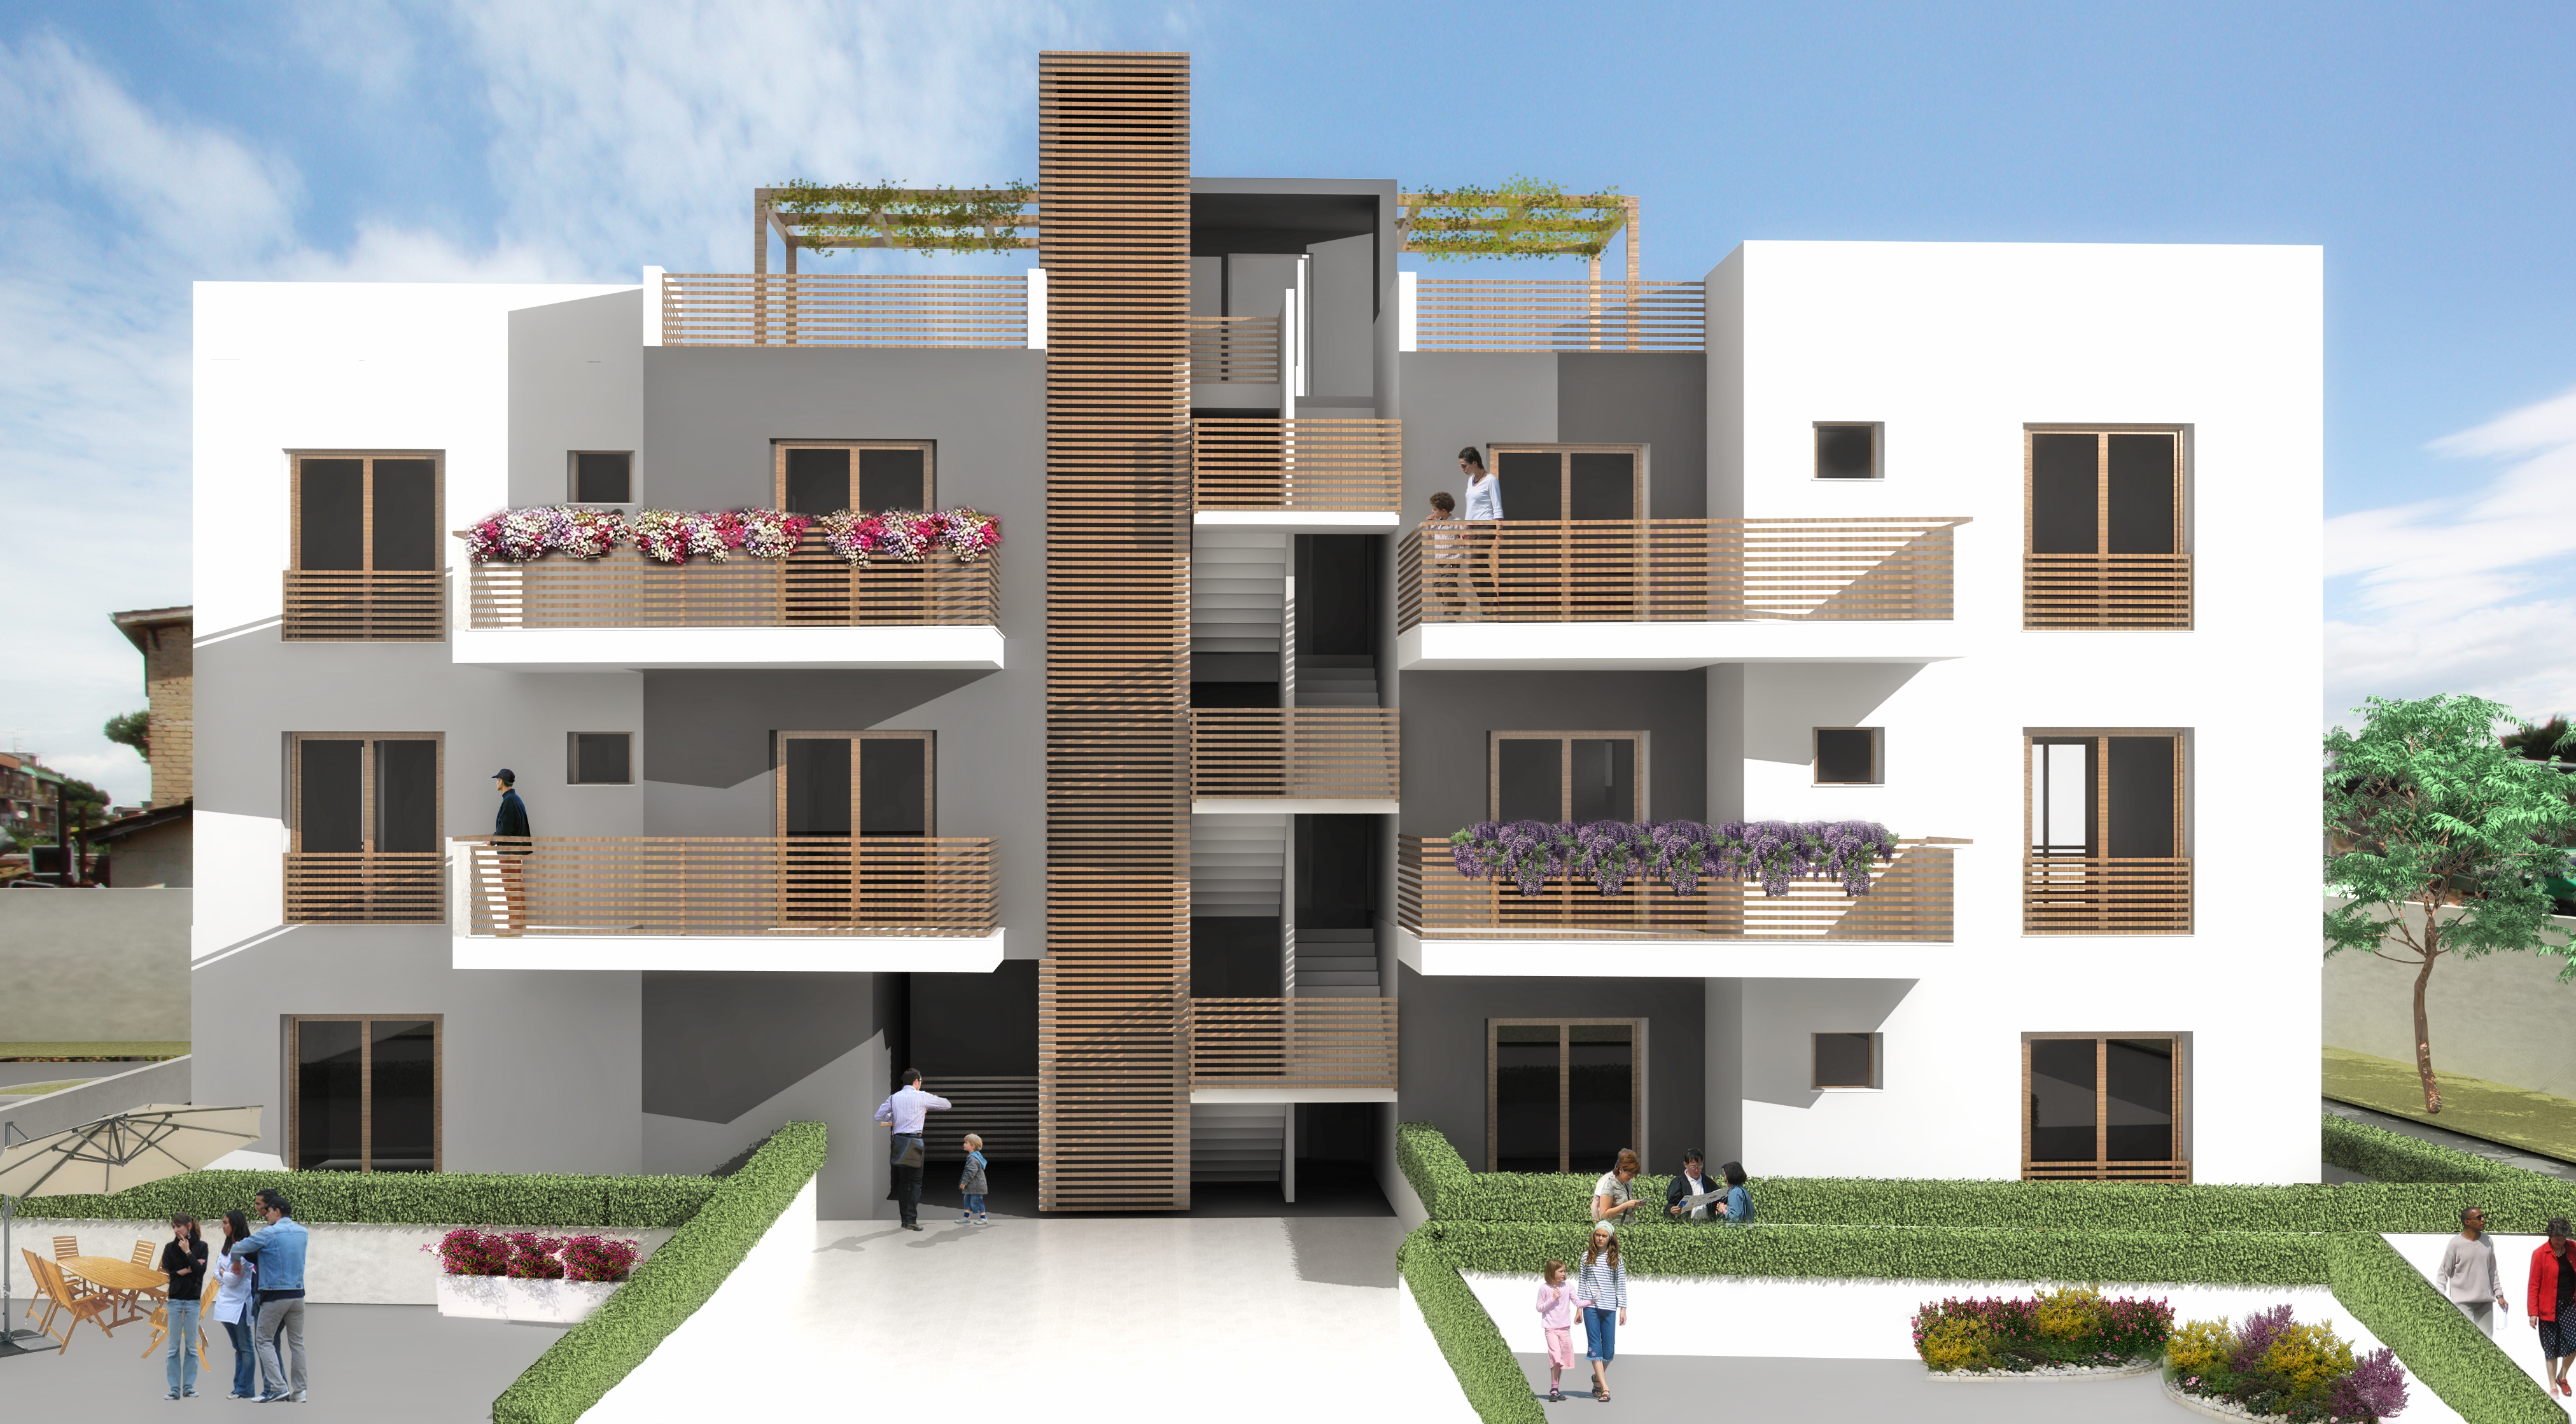 Torrenova 100 franco bernardini architetto for Rendering case moderne